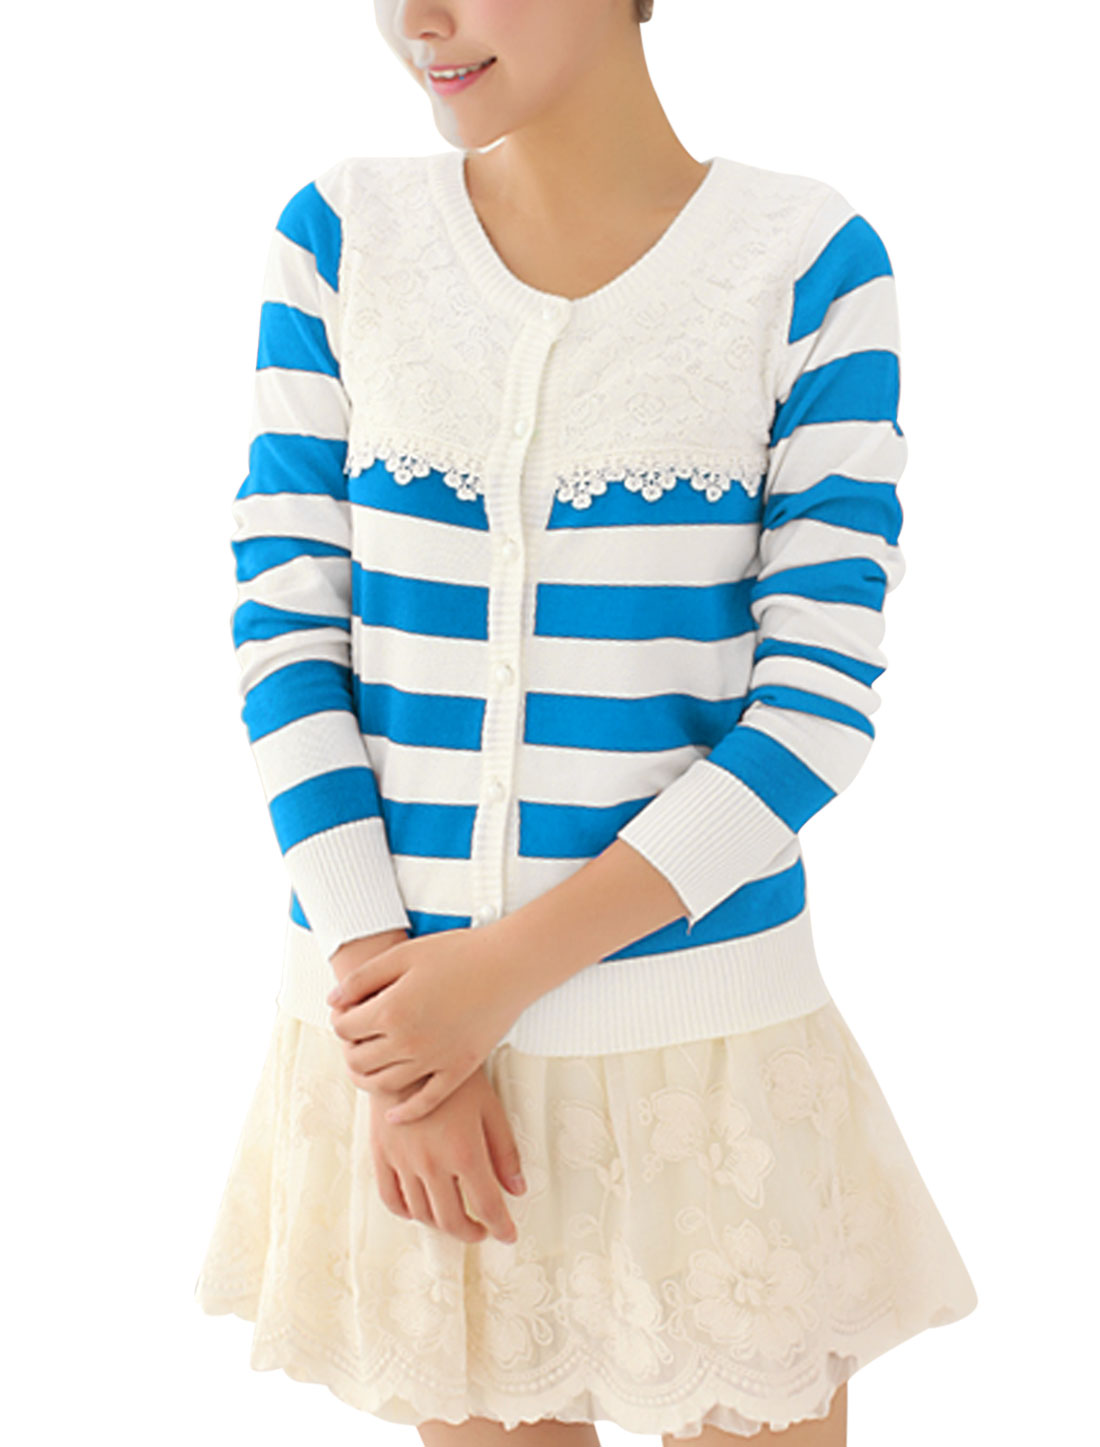 Lady Stripes Pattern Single Breasted Slim Fit Knit Shirt Baby Blue White S